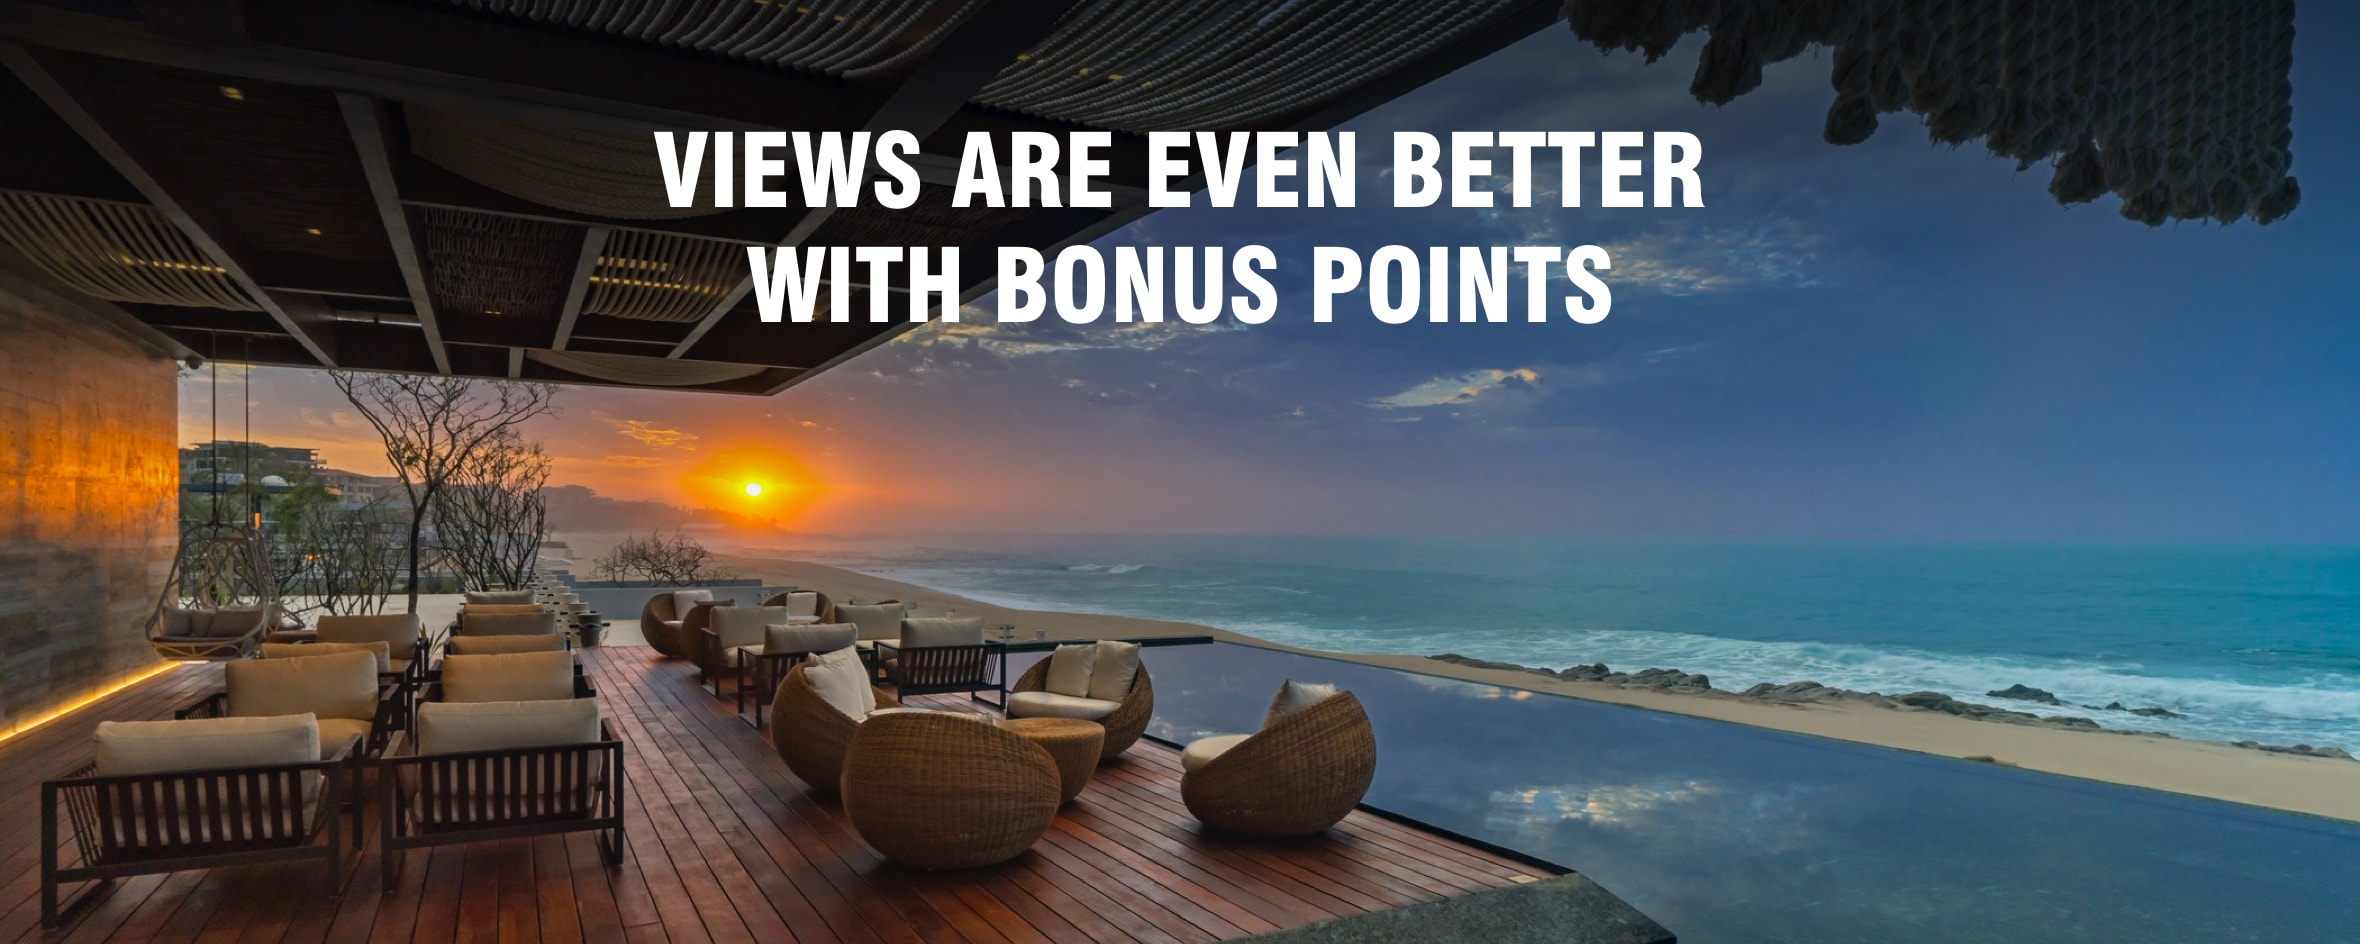 Views are even better with bonus points.